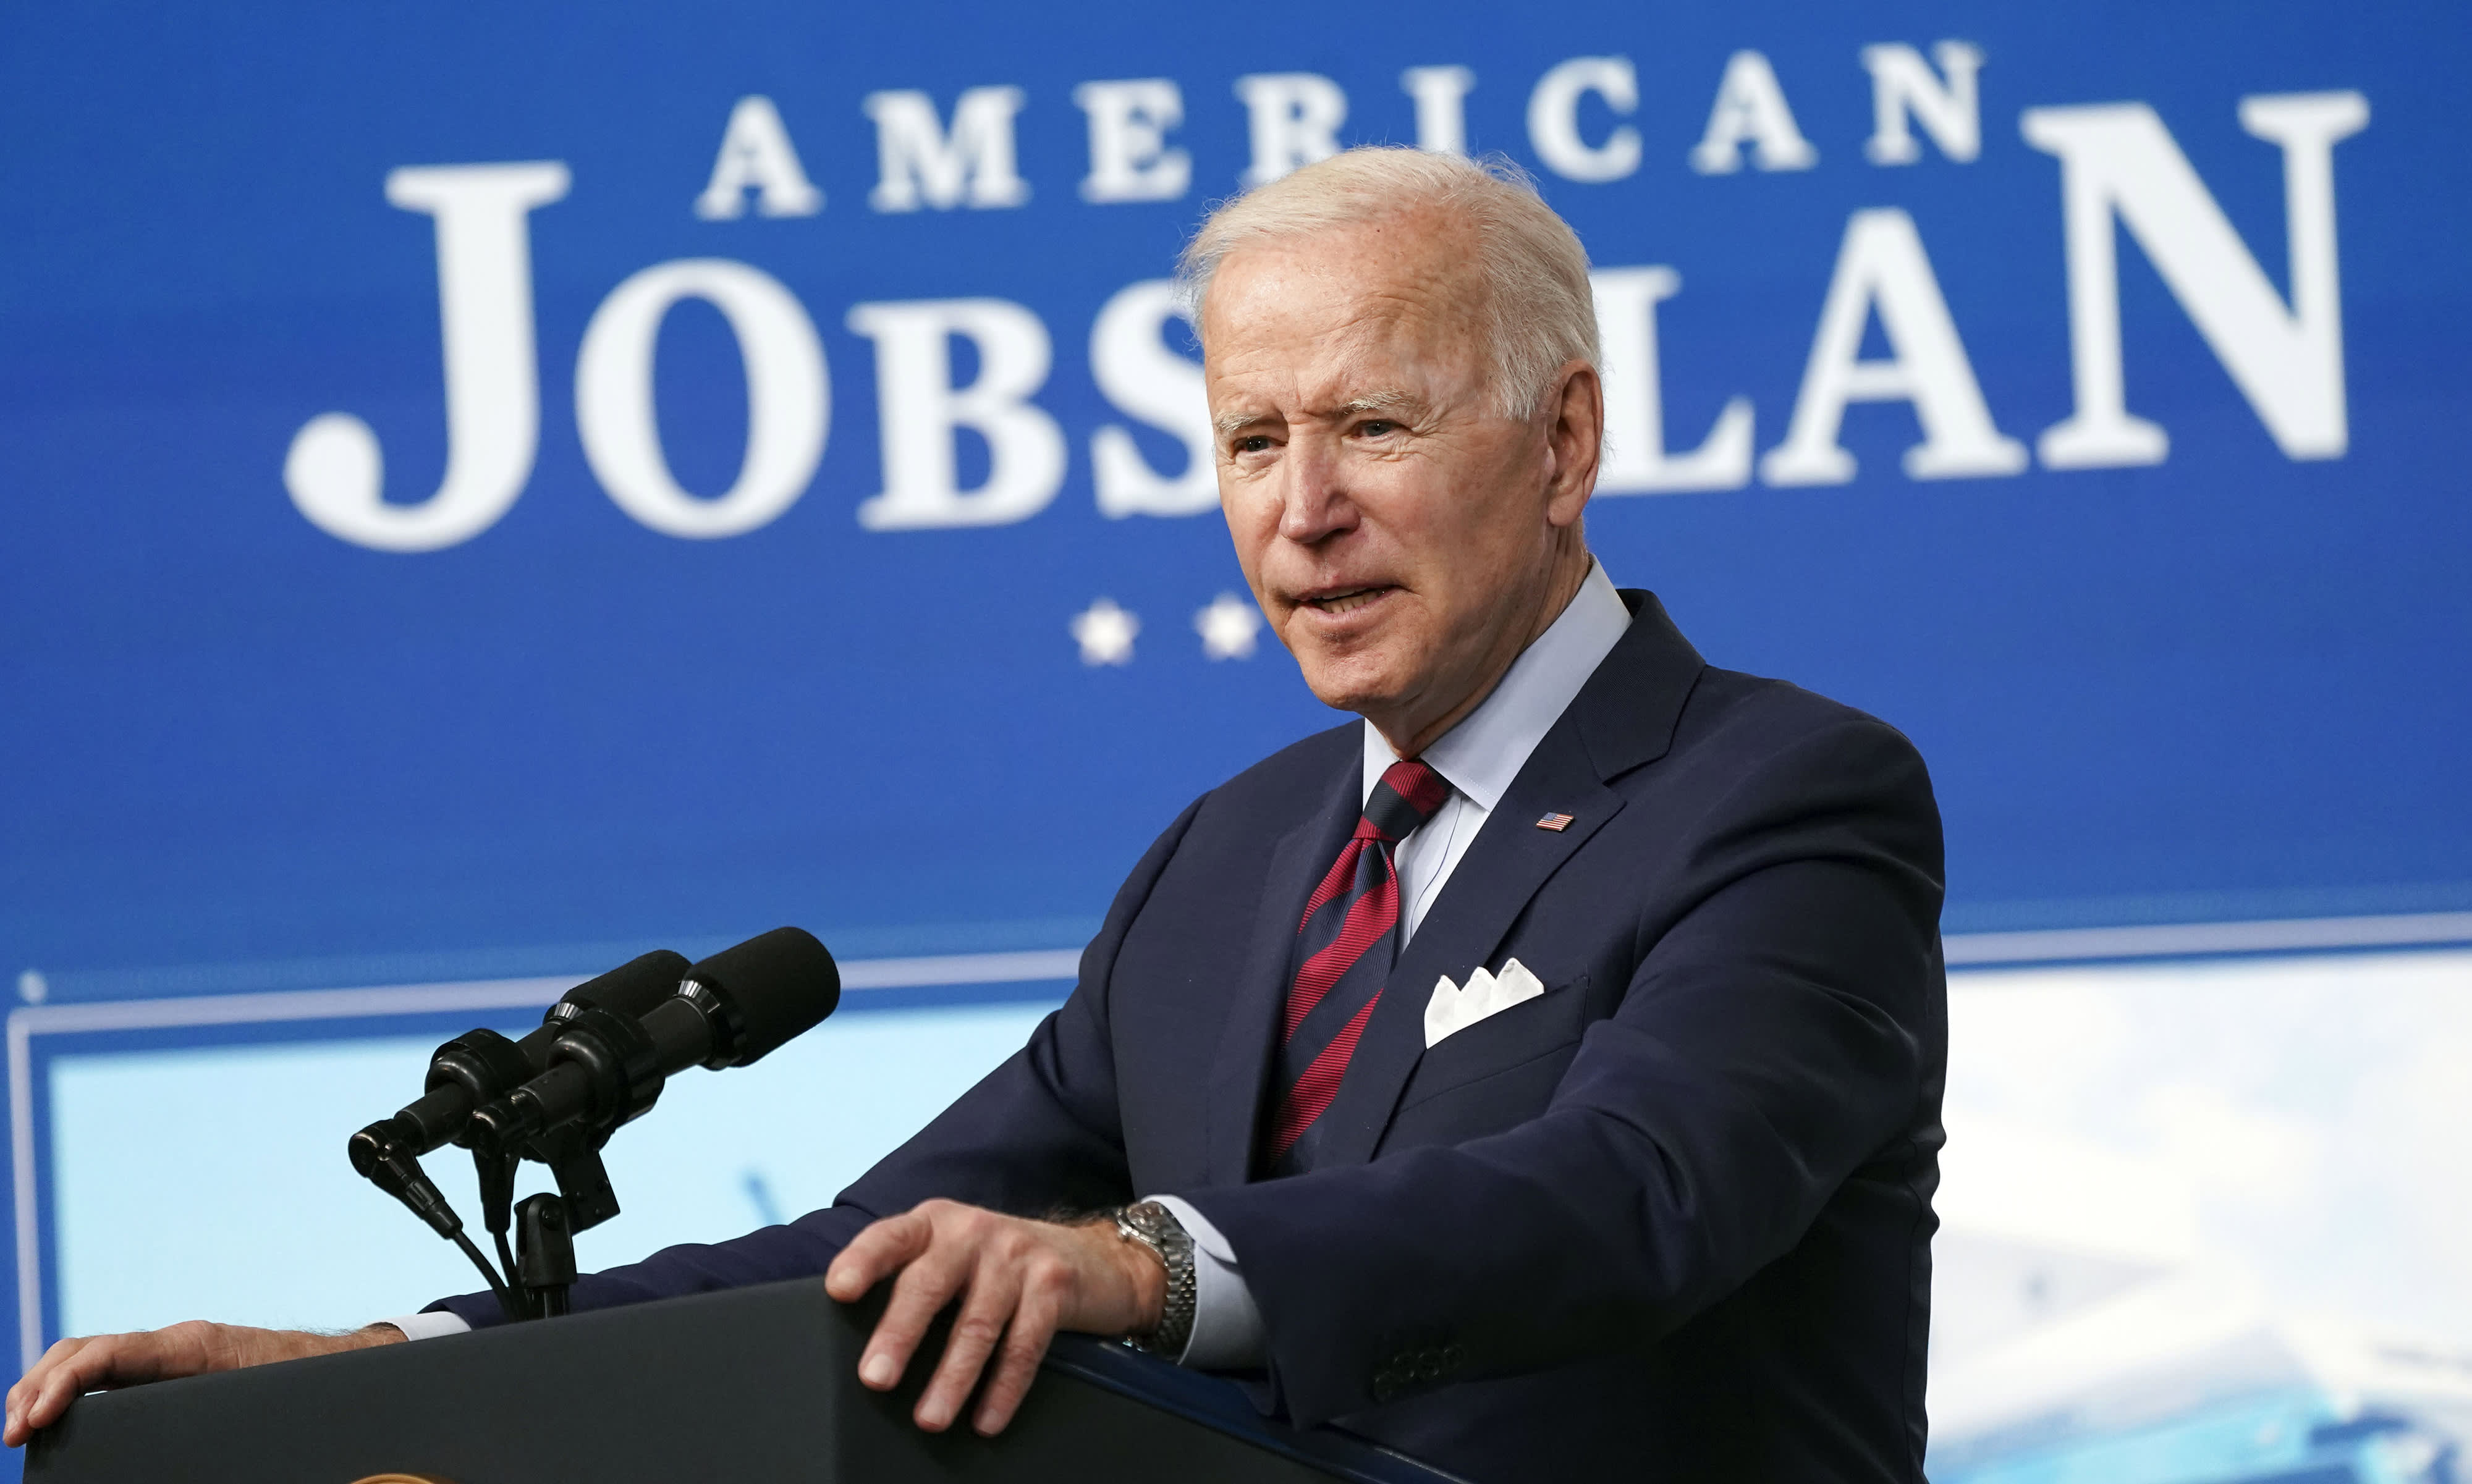 Biden's economic plans will help the U.S. compete with China, says former Treasury secretary